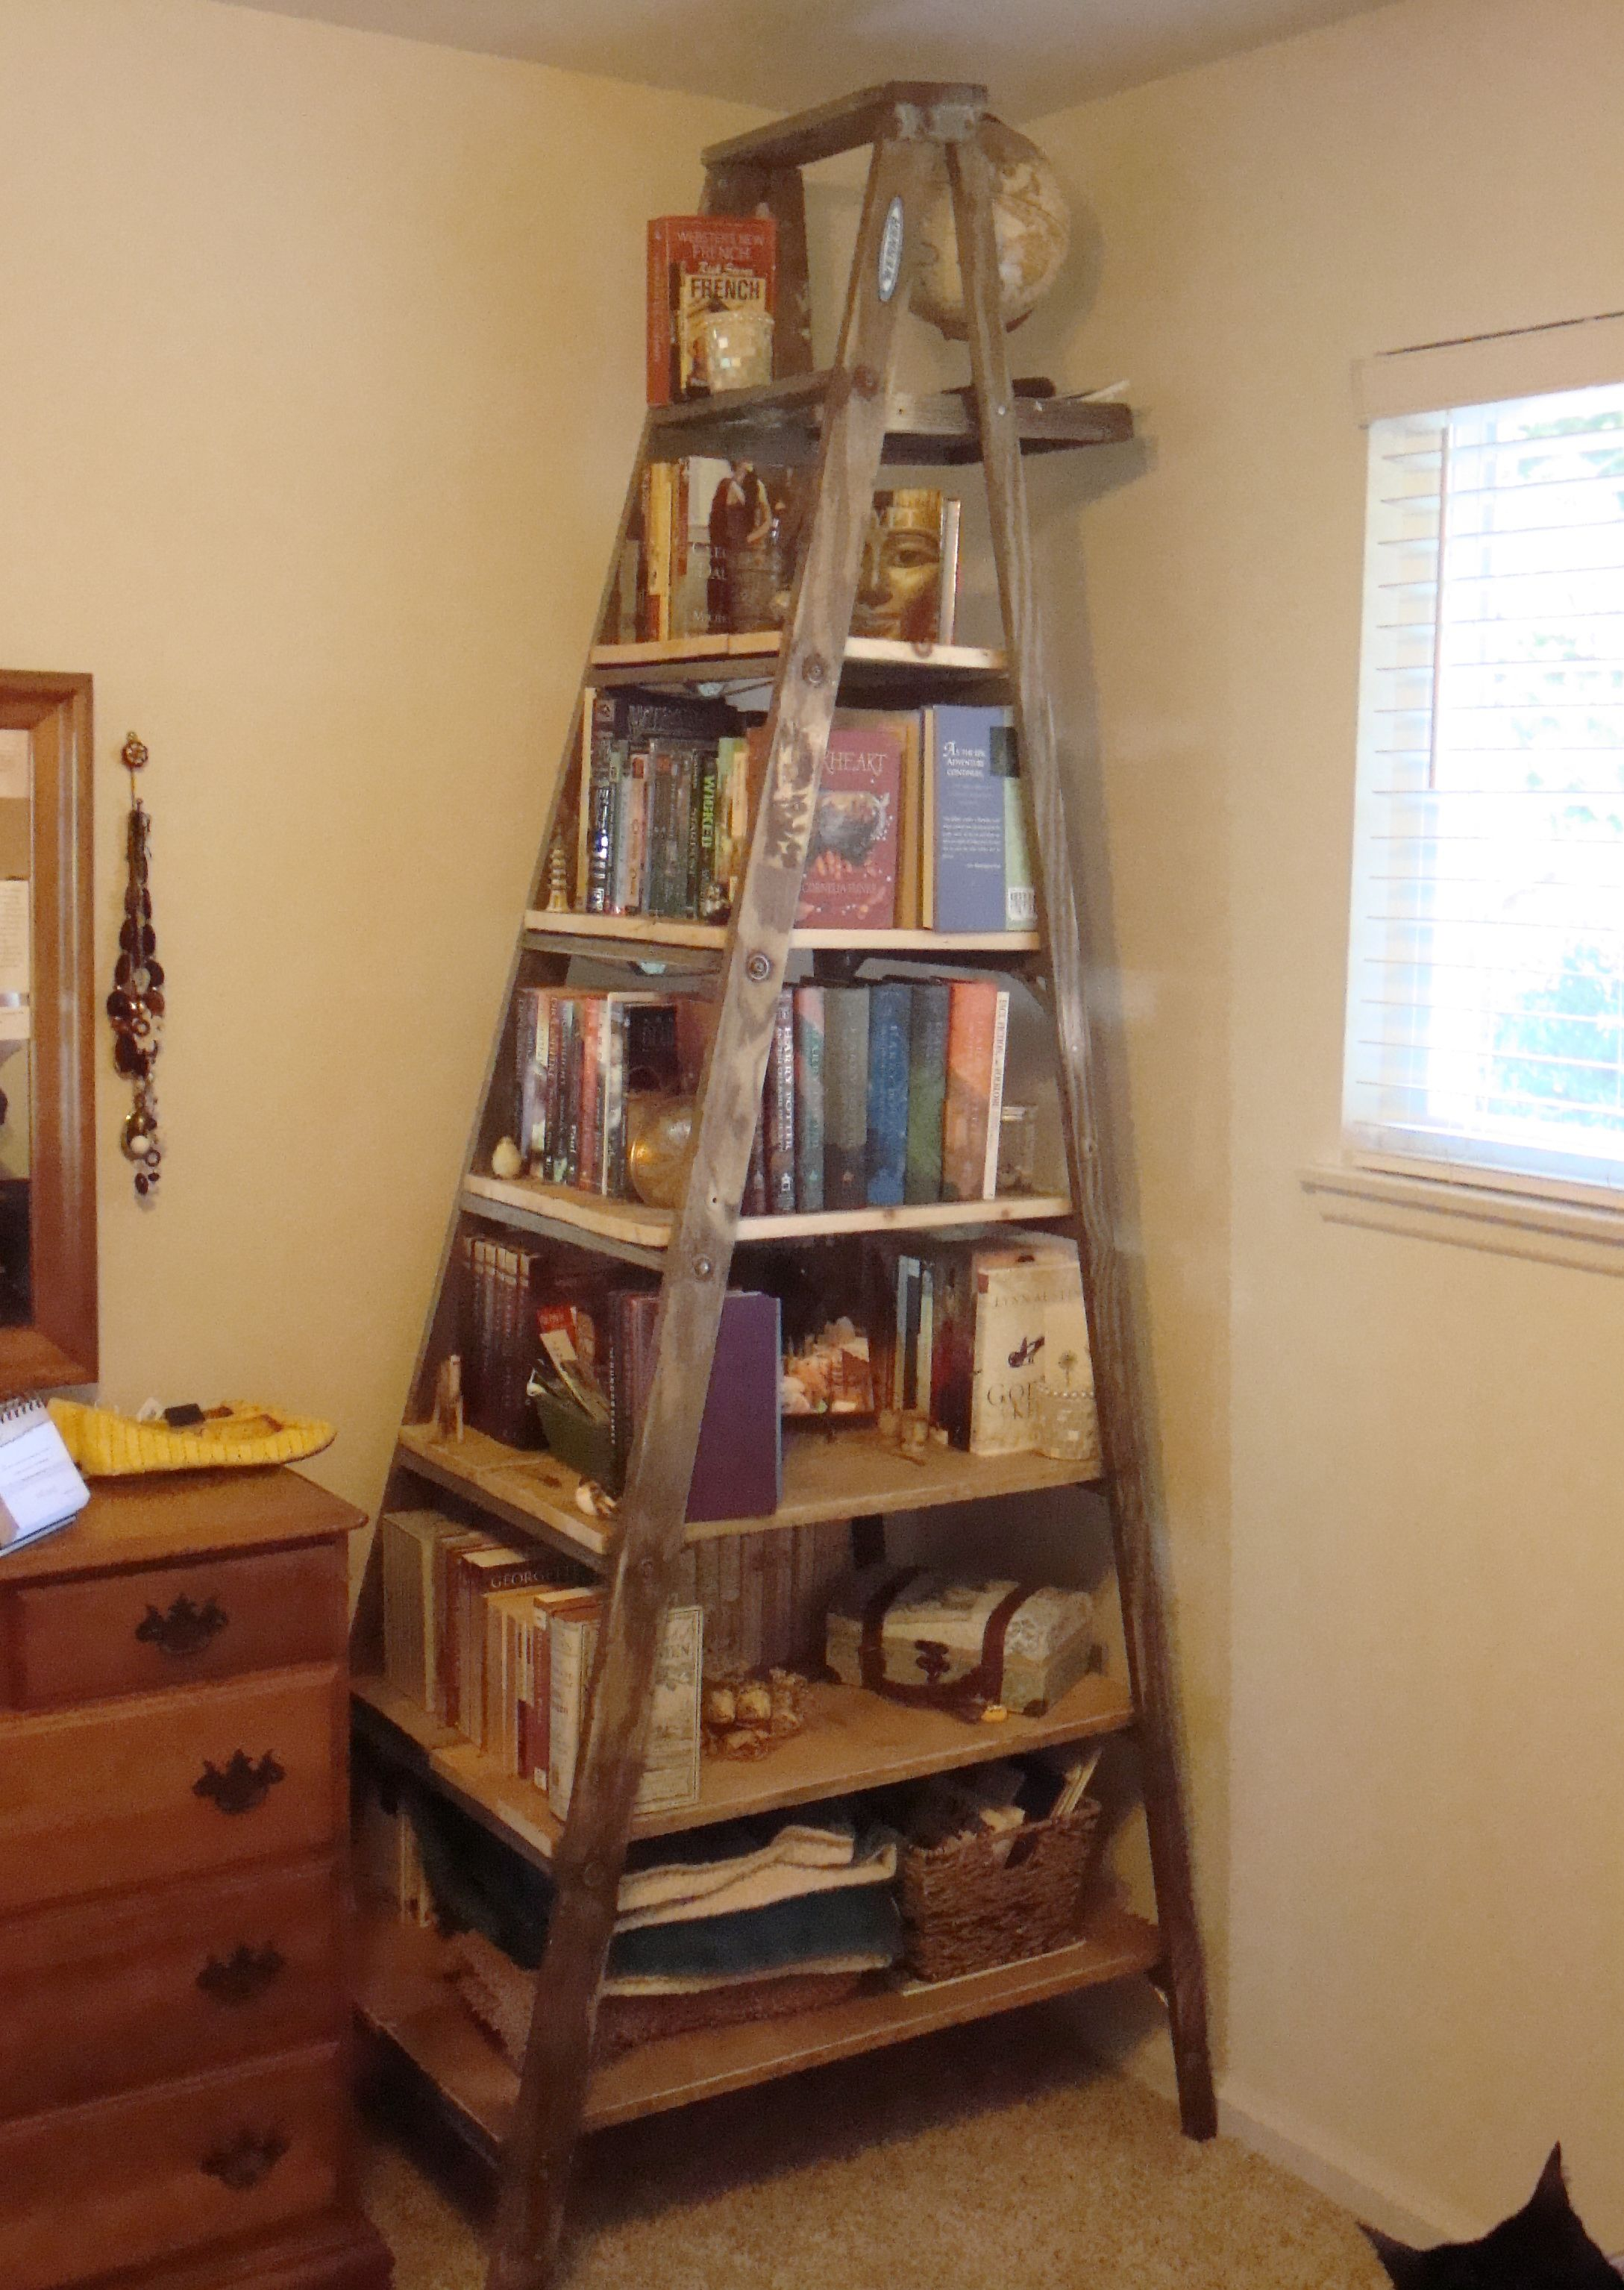 I Made This Book Shelf Out Of An Old 8 Ft Wooden Ladder And Some Planks